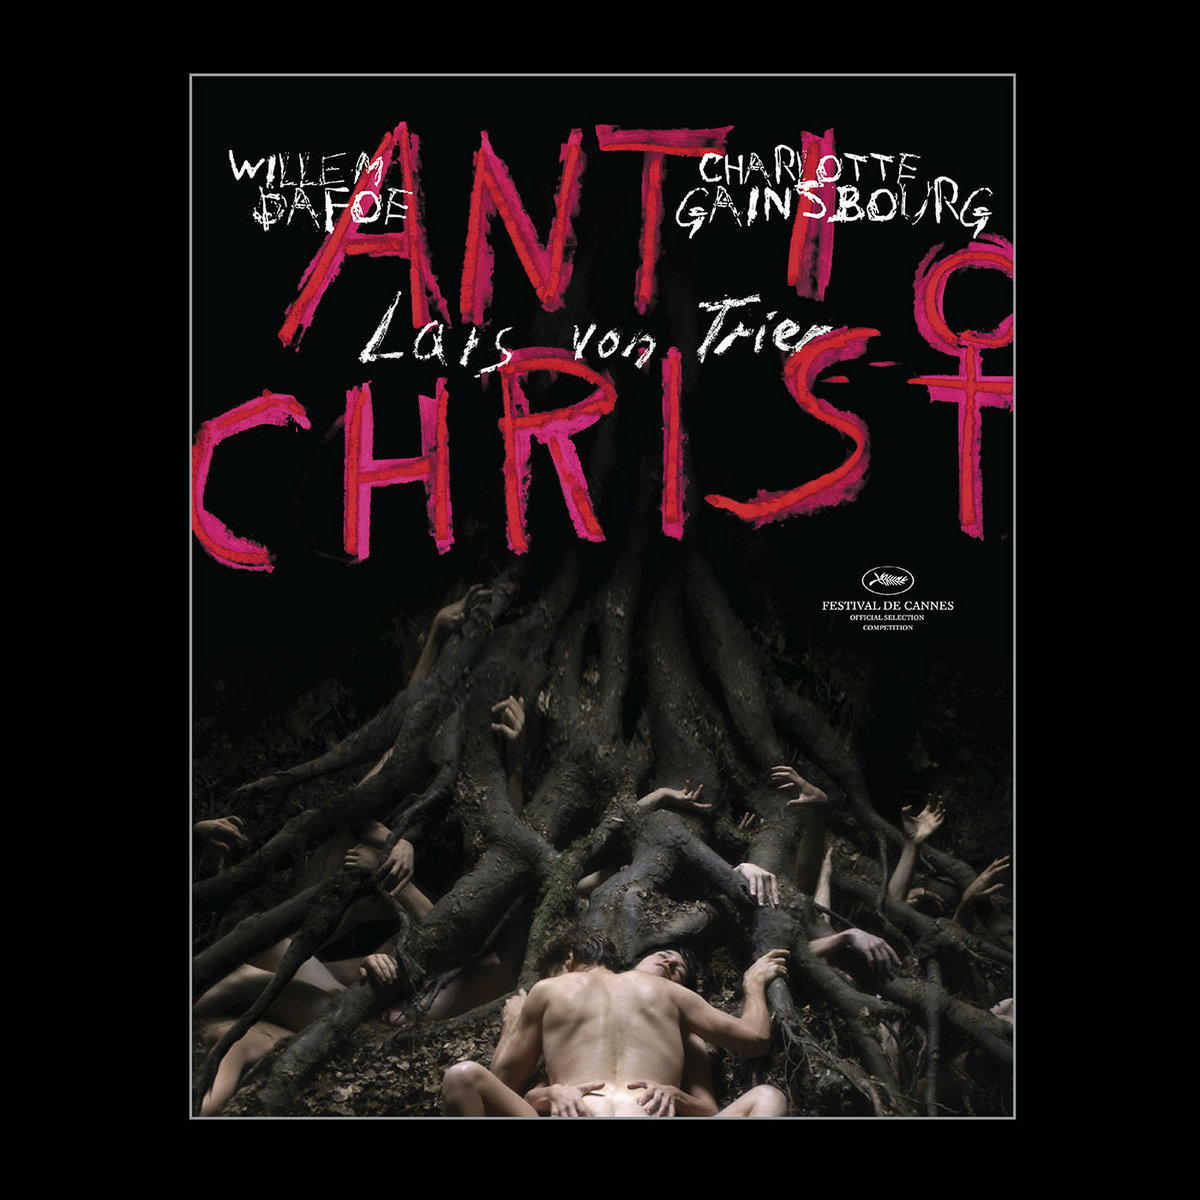 Soundtrack Review: ANTICHRIST ORIGINAL SOUNDTRACK